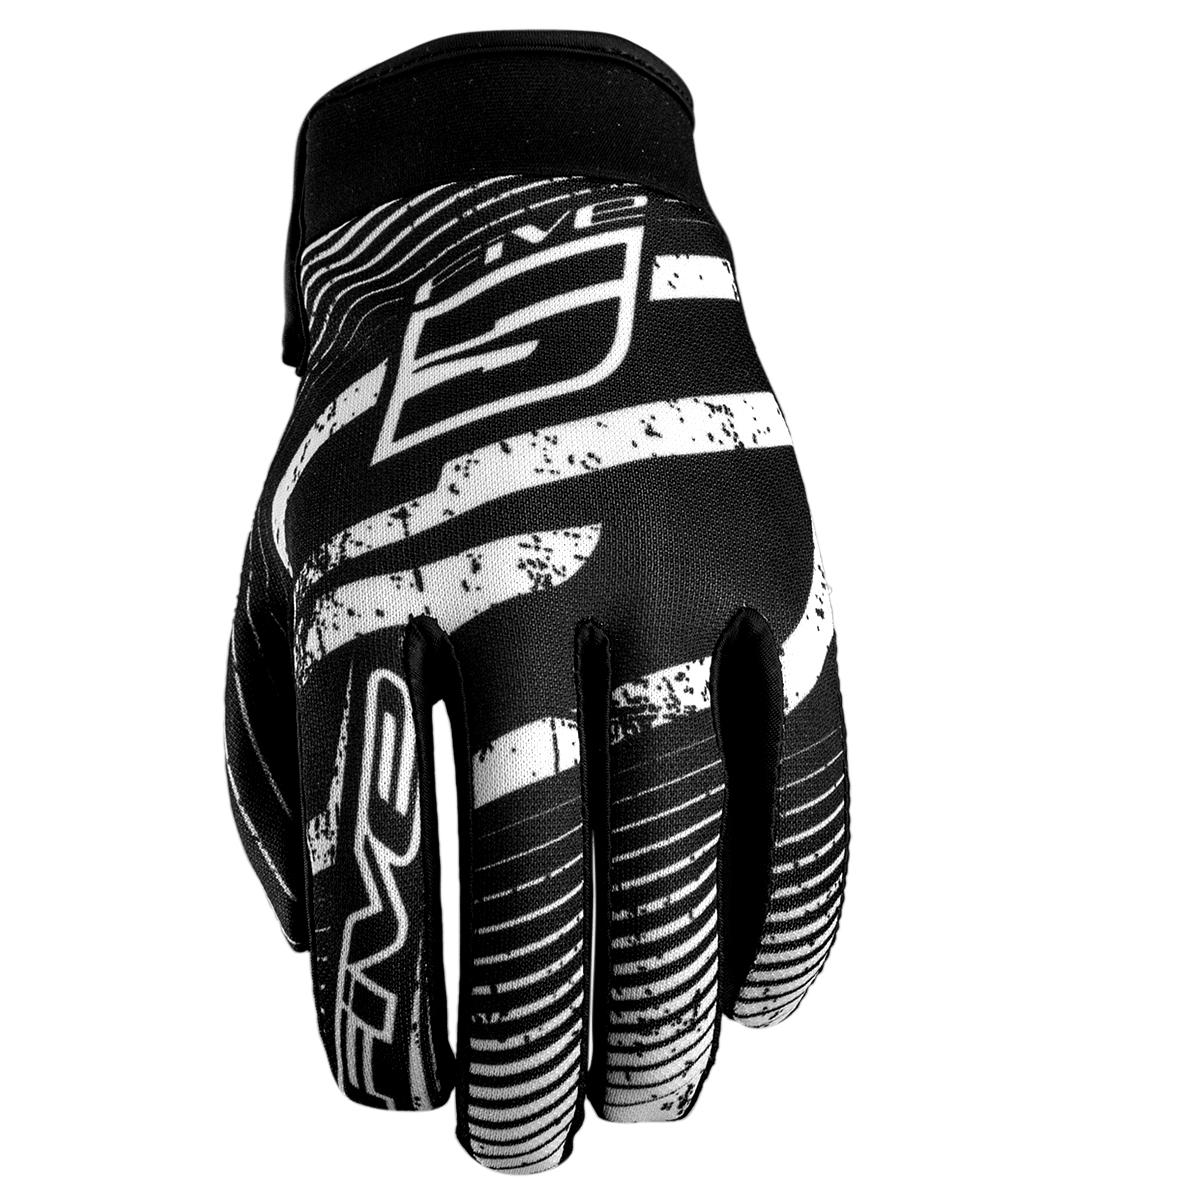 Gants Five Planet Fashion Logo Black/White - XXL